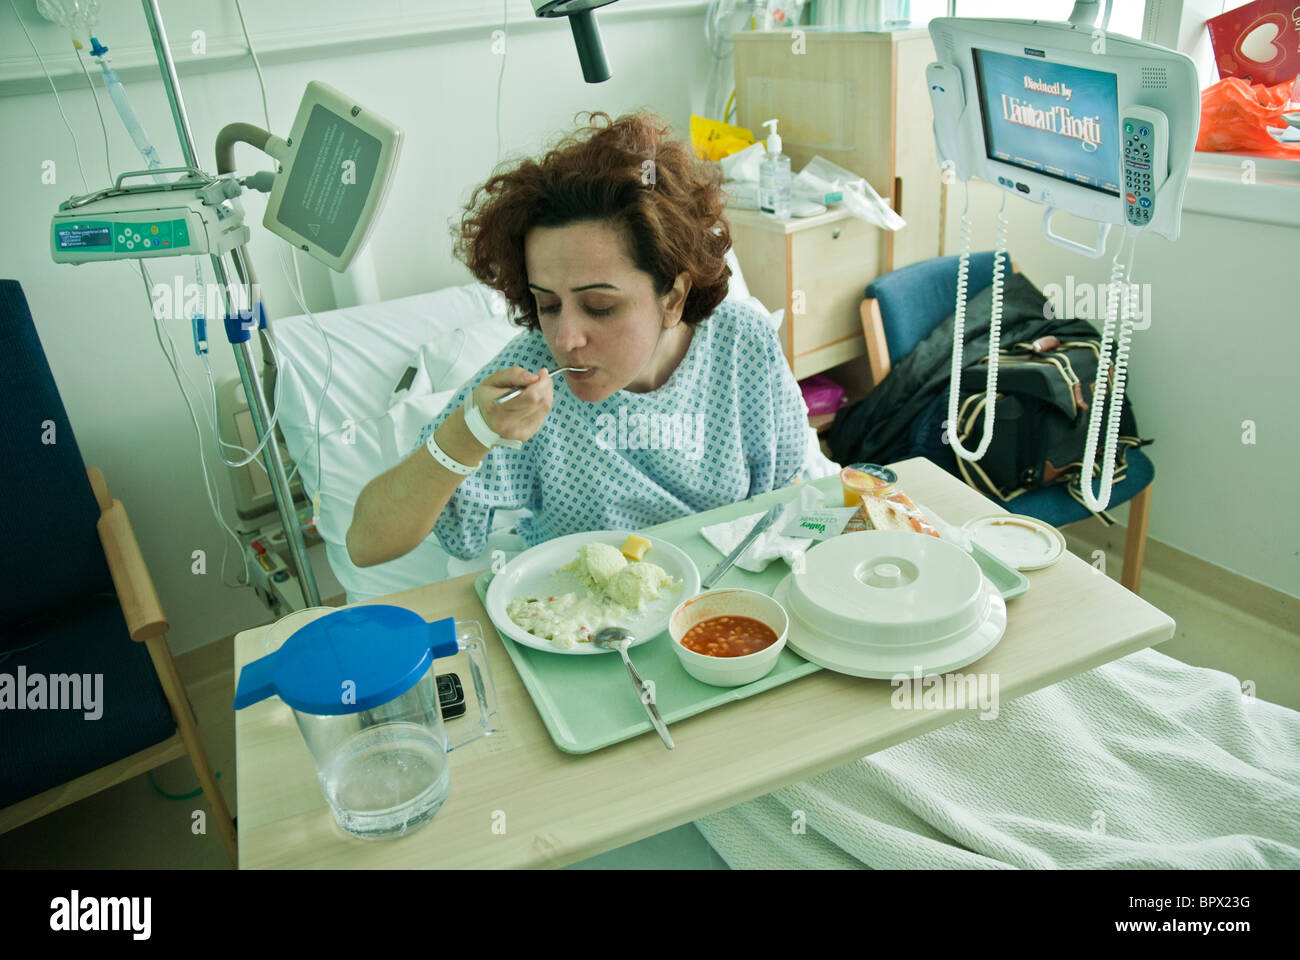 Hospital Soup Stock Photos & Hospital Soup Stock Images - Alamy